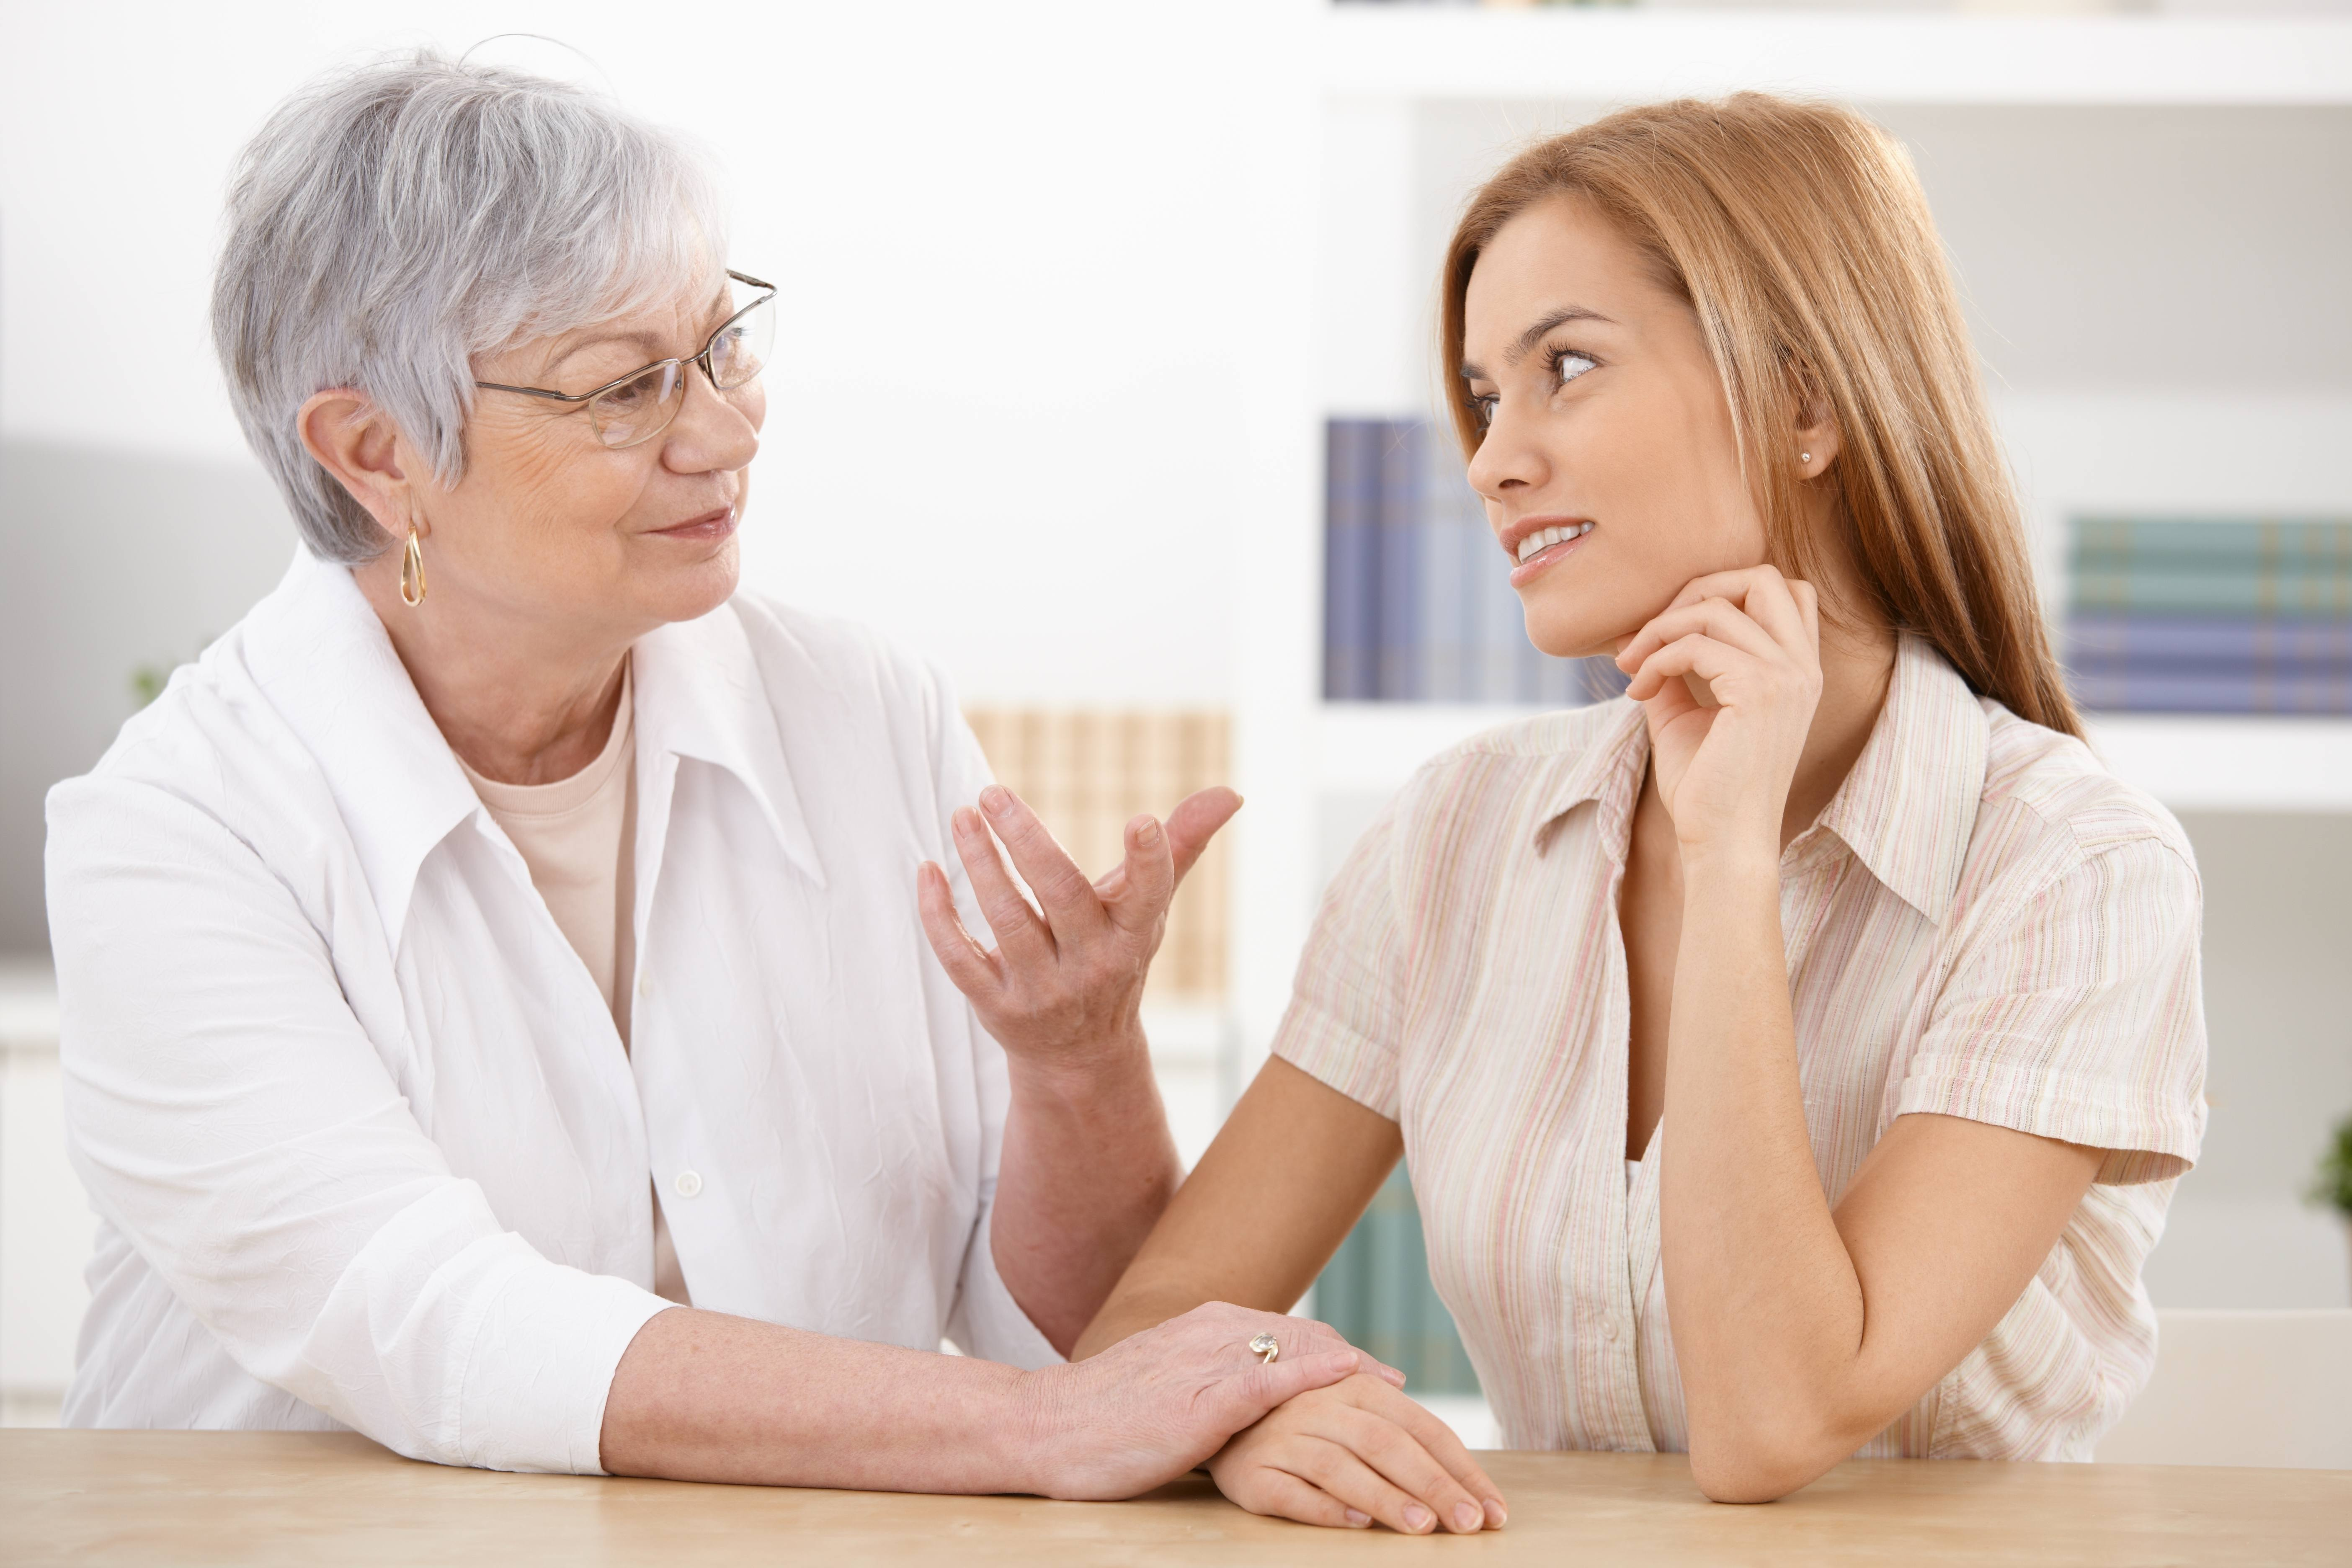 older woman talking with younger woman at table